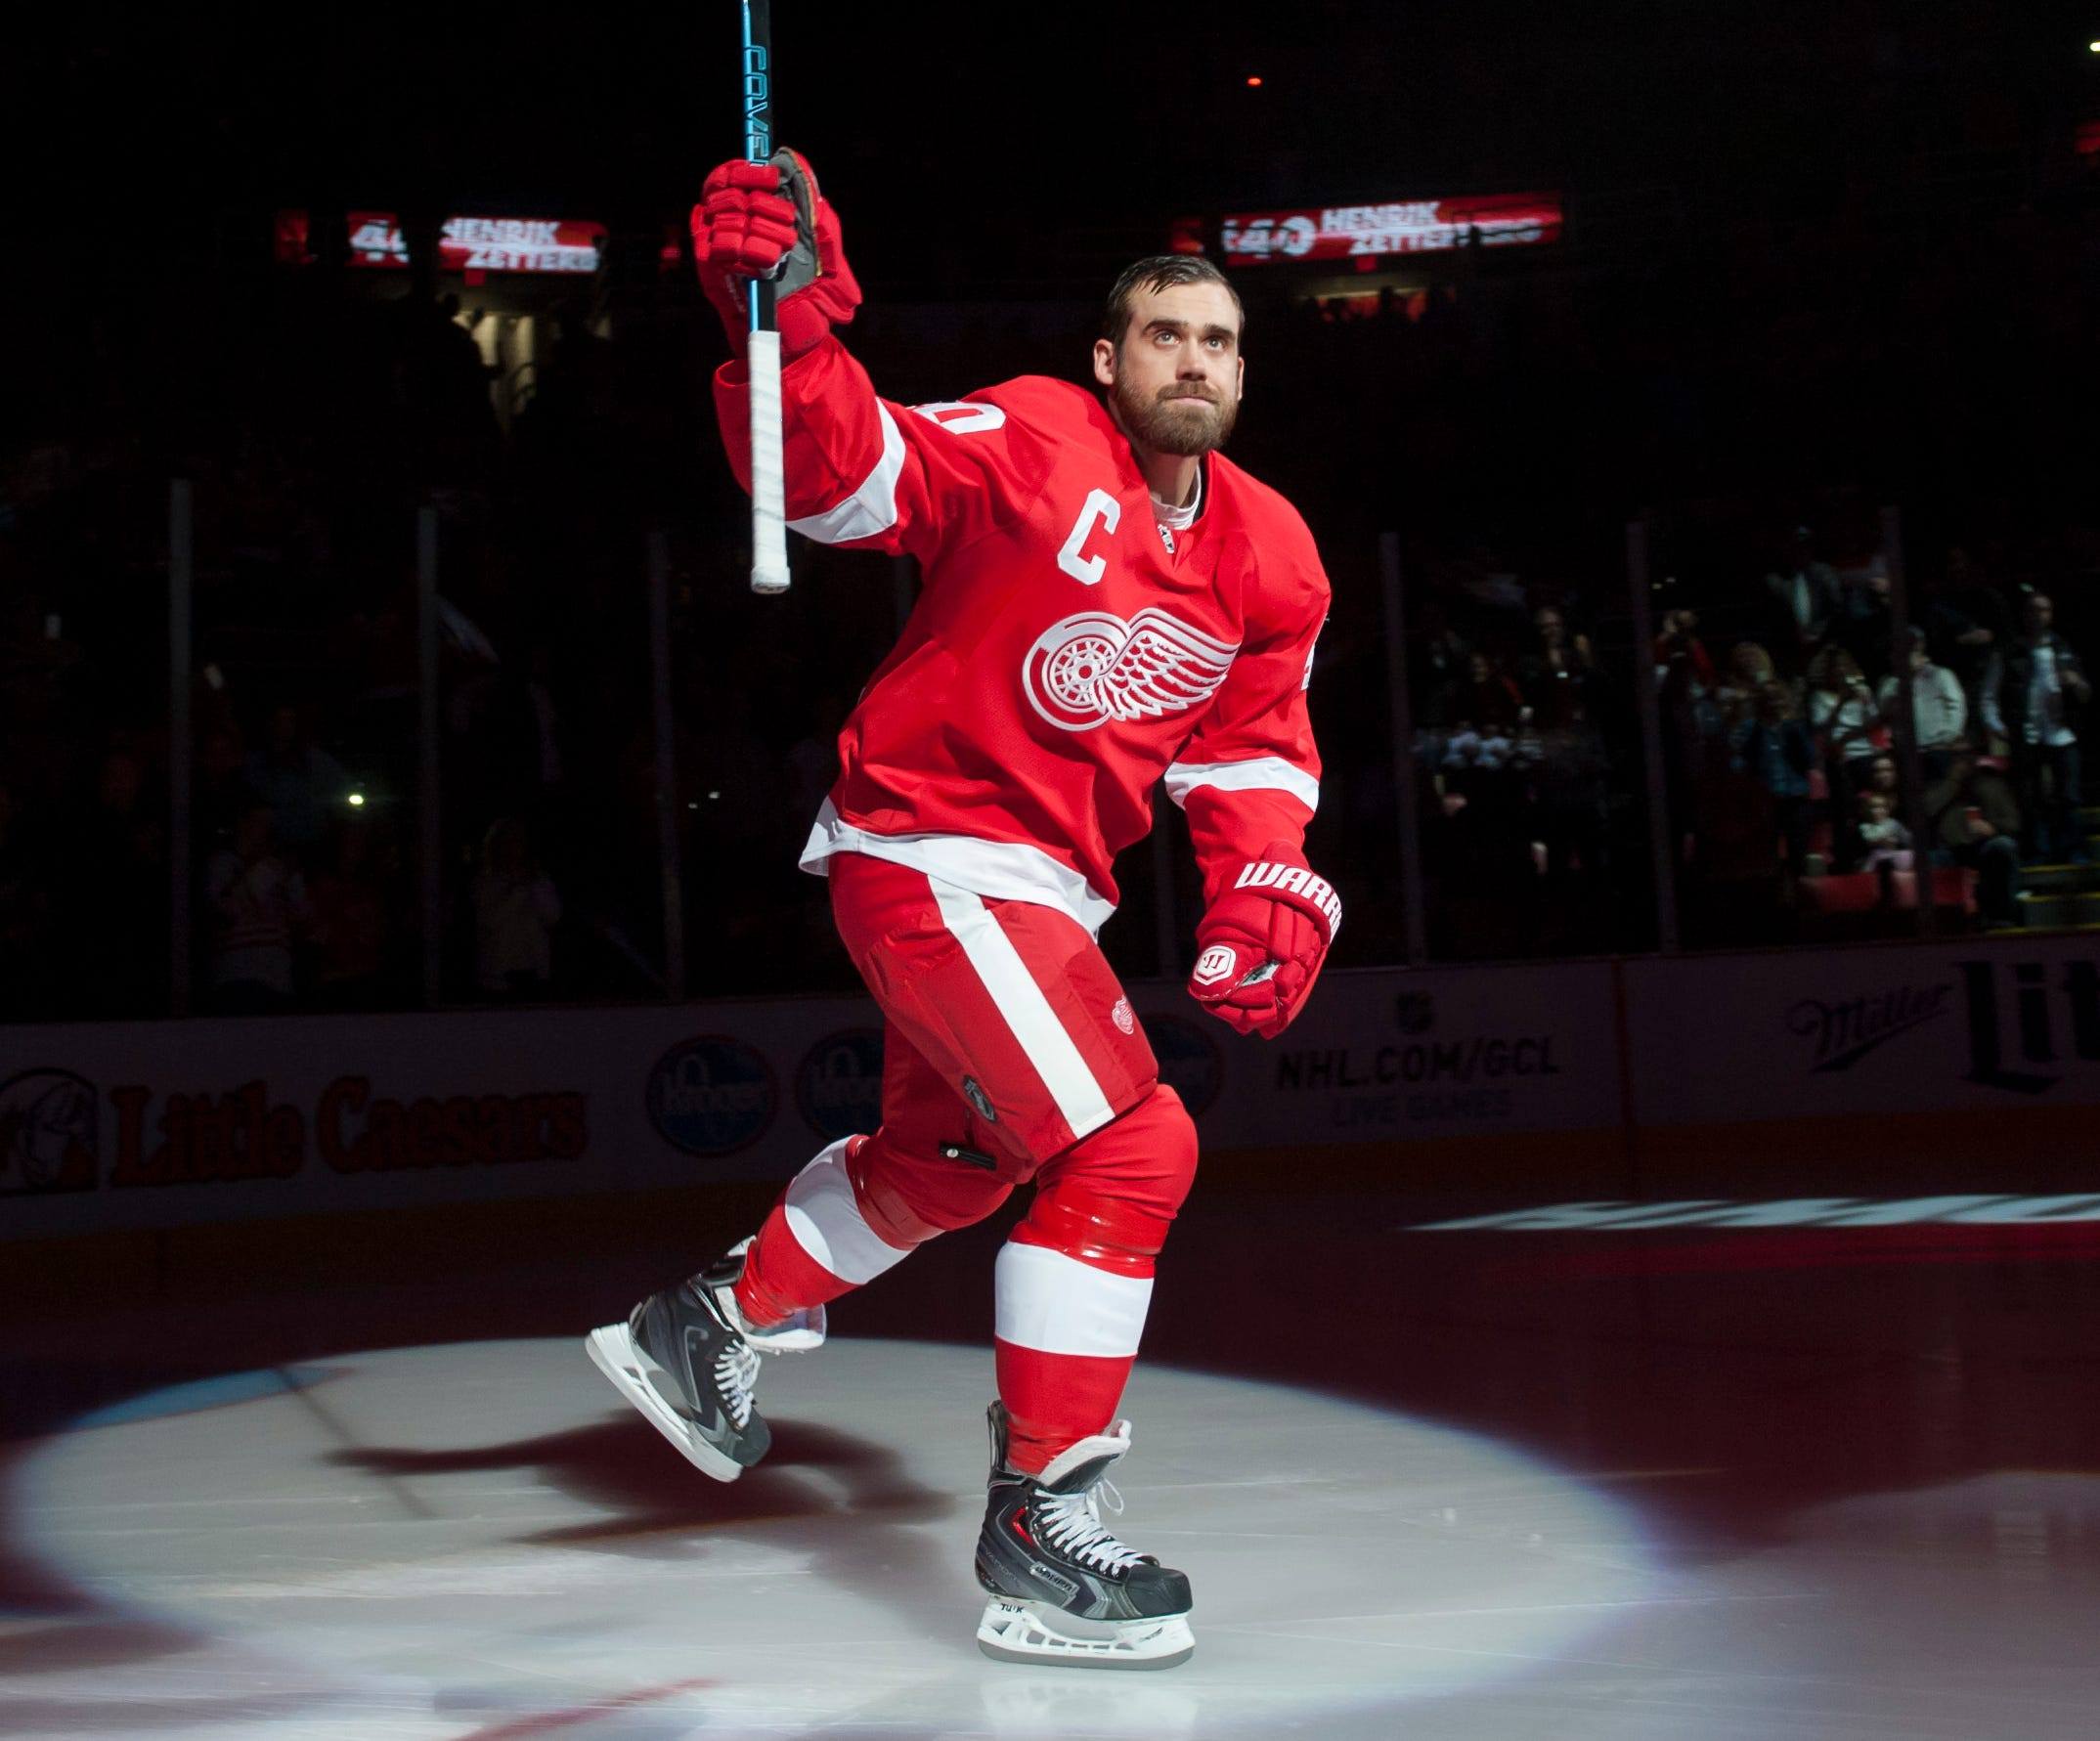 Detroit Red Wings left wing Henrik Zetterberg skates onto the ice for pre-game introductions before the start a game against the Boston Bruins at Joe Louis Arena on Oct. 9, 2014.